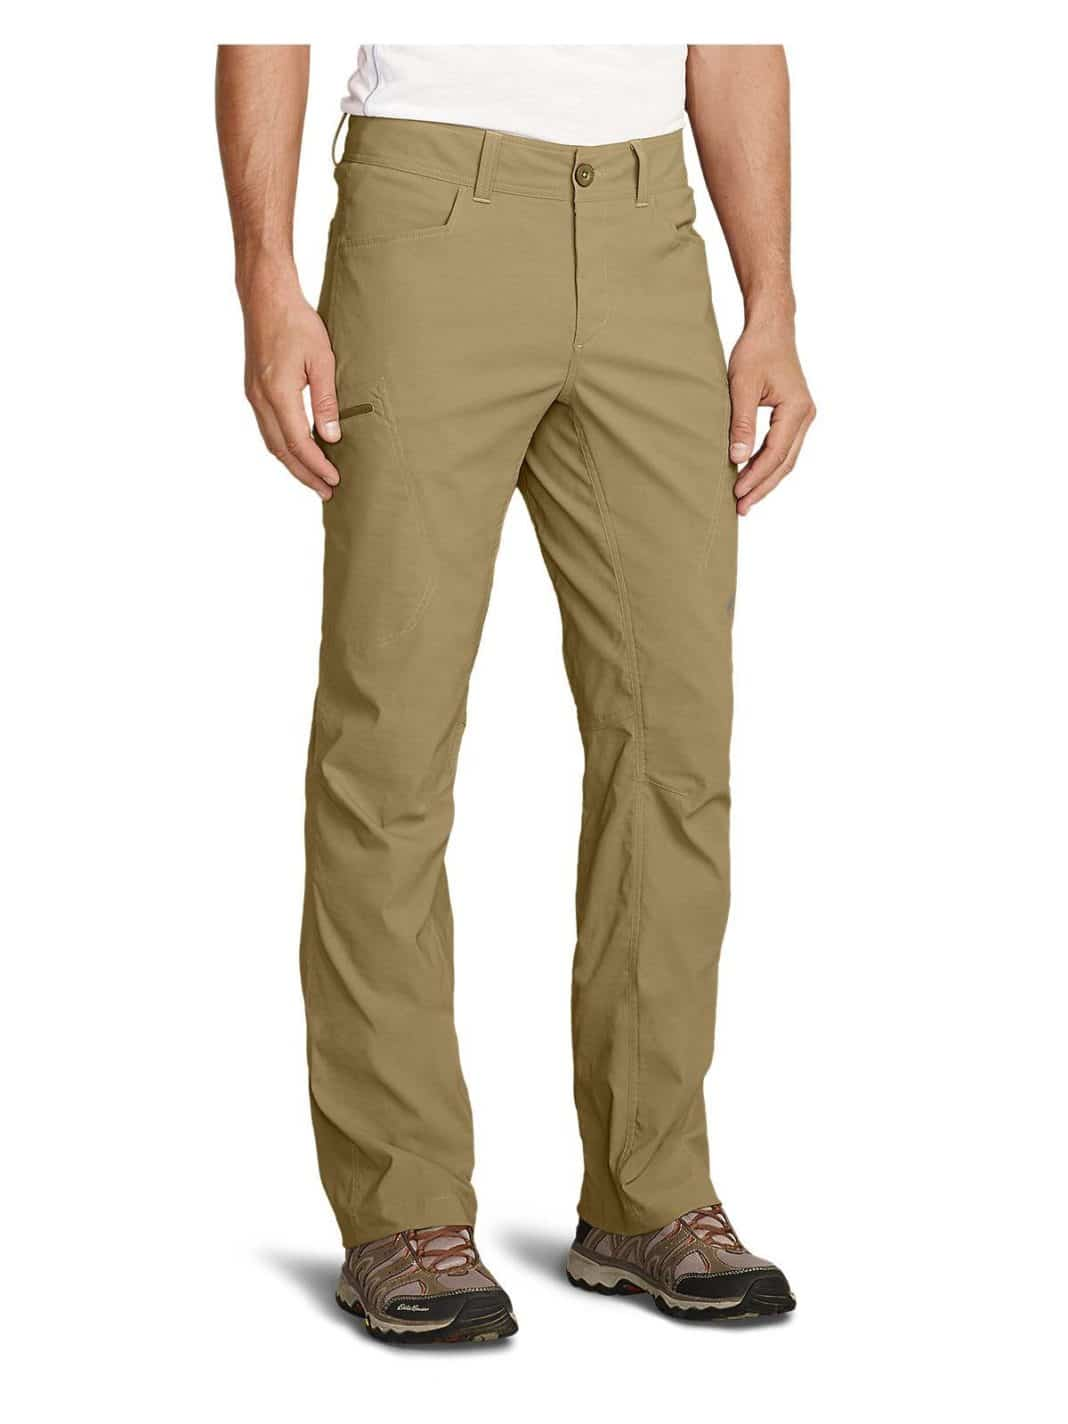 Men's Eddie Bauer Guide Pro Pants - Design